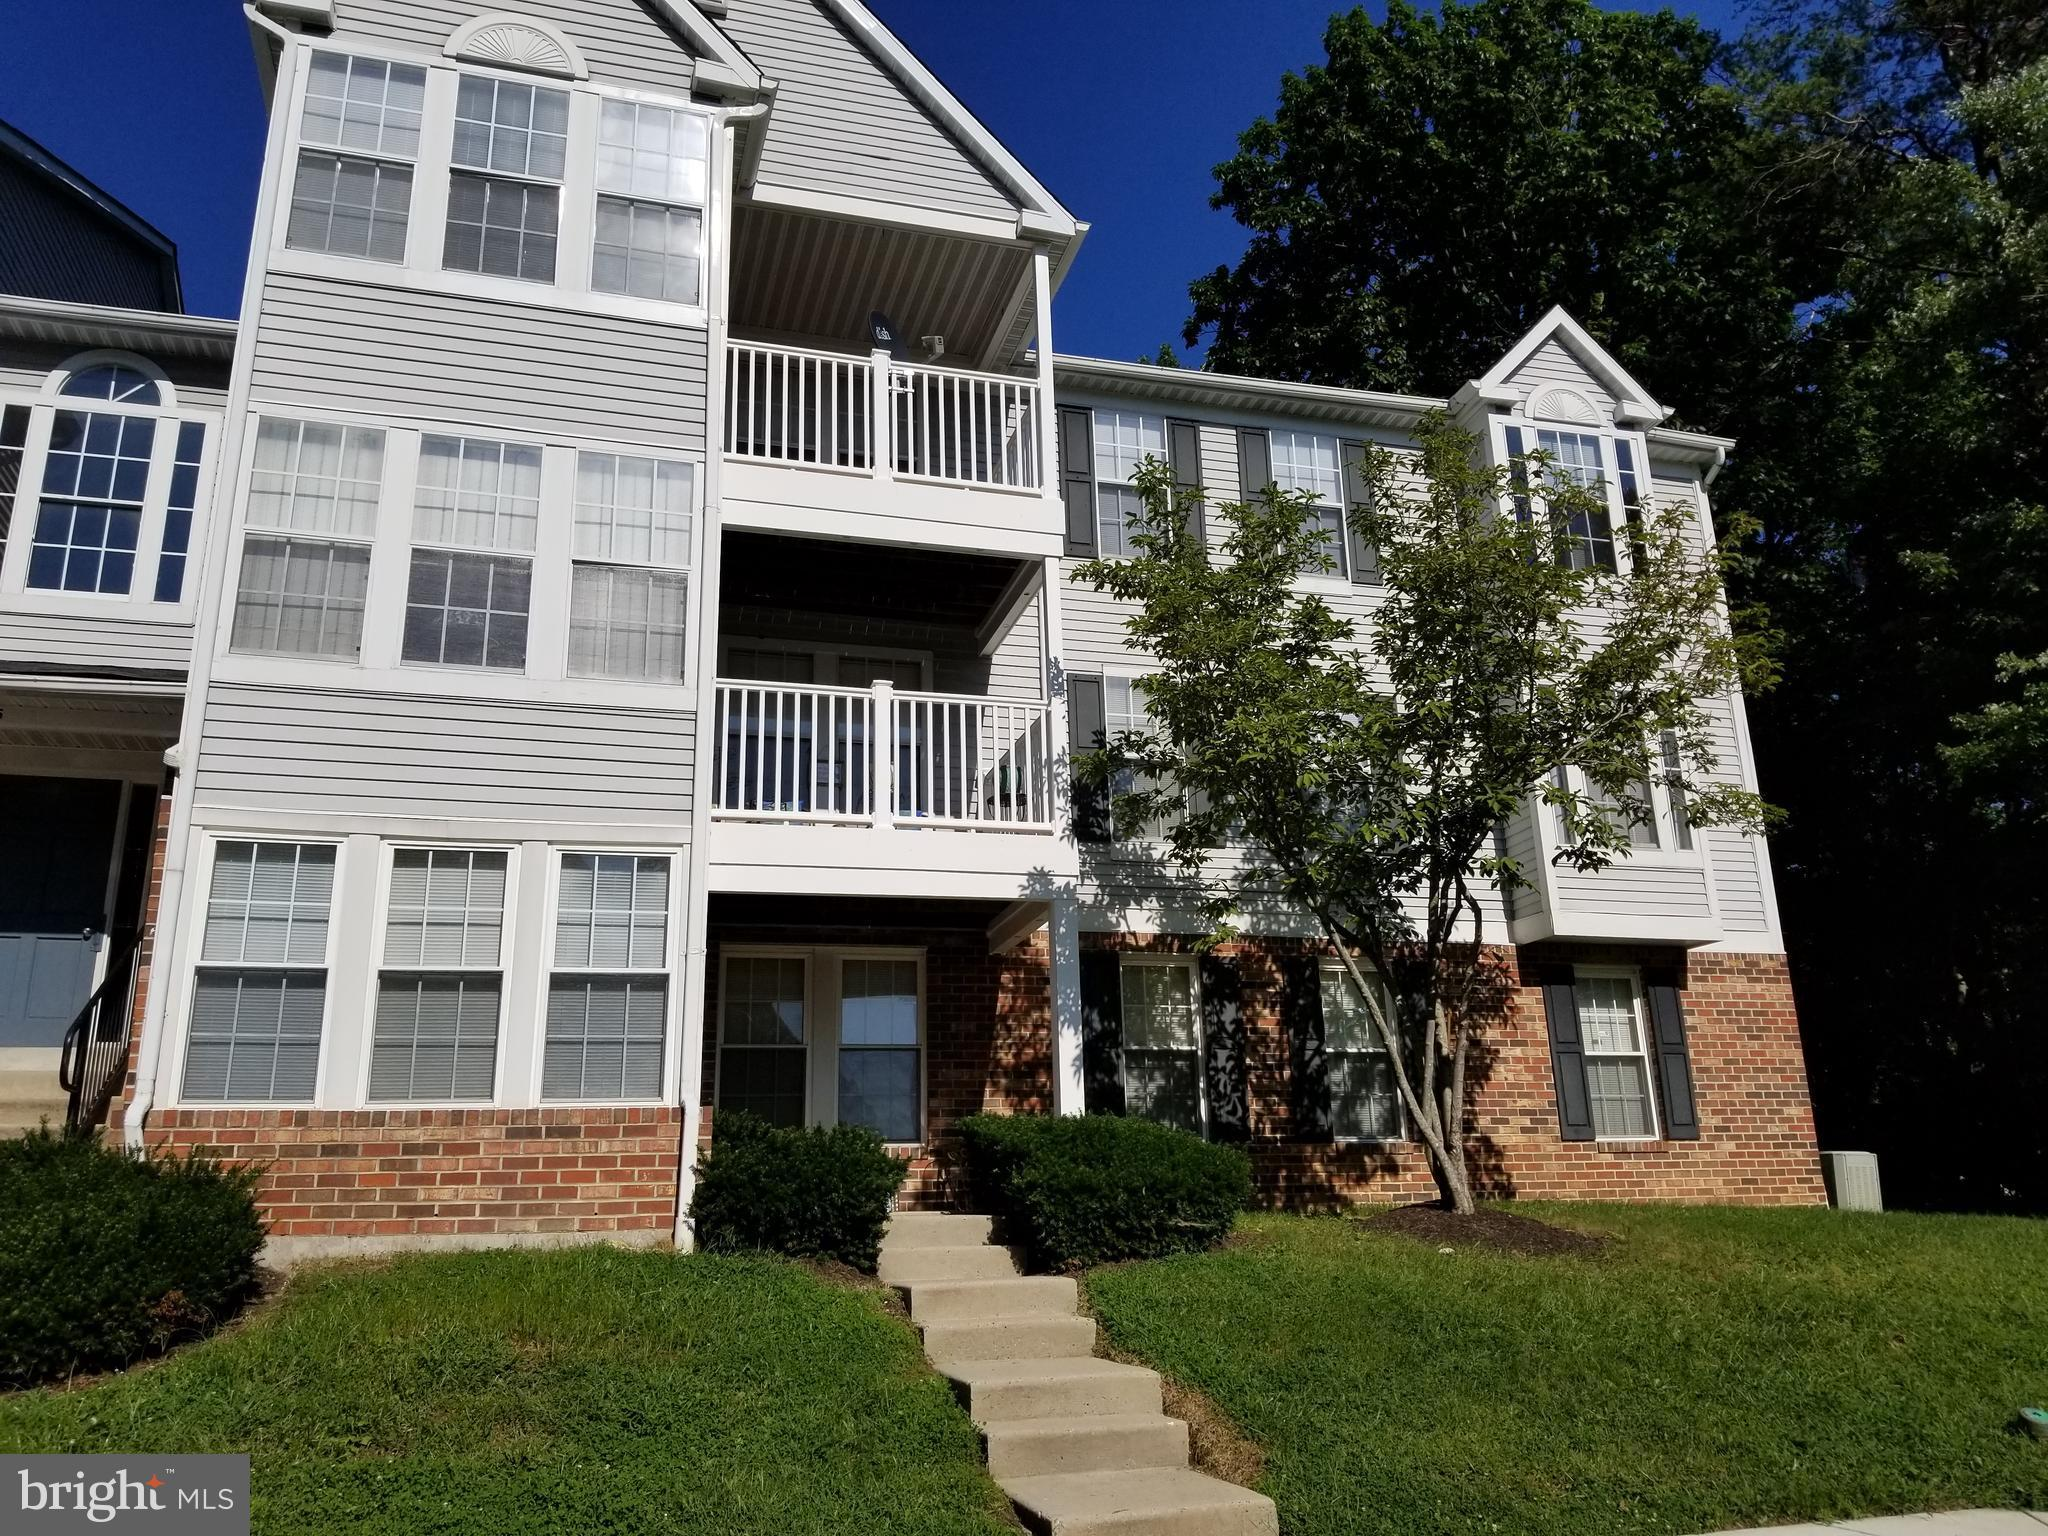 1st floor unit features new paint and carpets. Breakfast bar to kitchen, extra closet storage space in master bedroom, sun/bonus room, laundry washer & dryer, refrigerator, range, and mounted microwave. Association amenities include clubhouse, swimming pool, tennis courts, and playground.